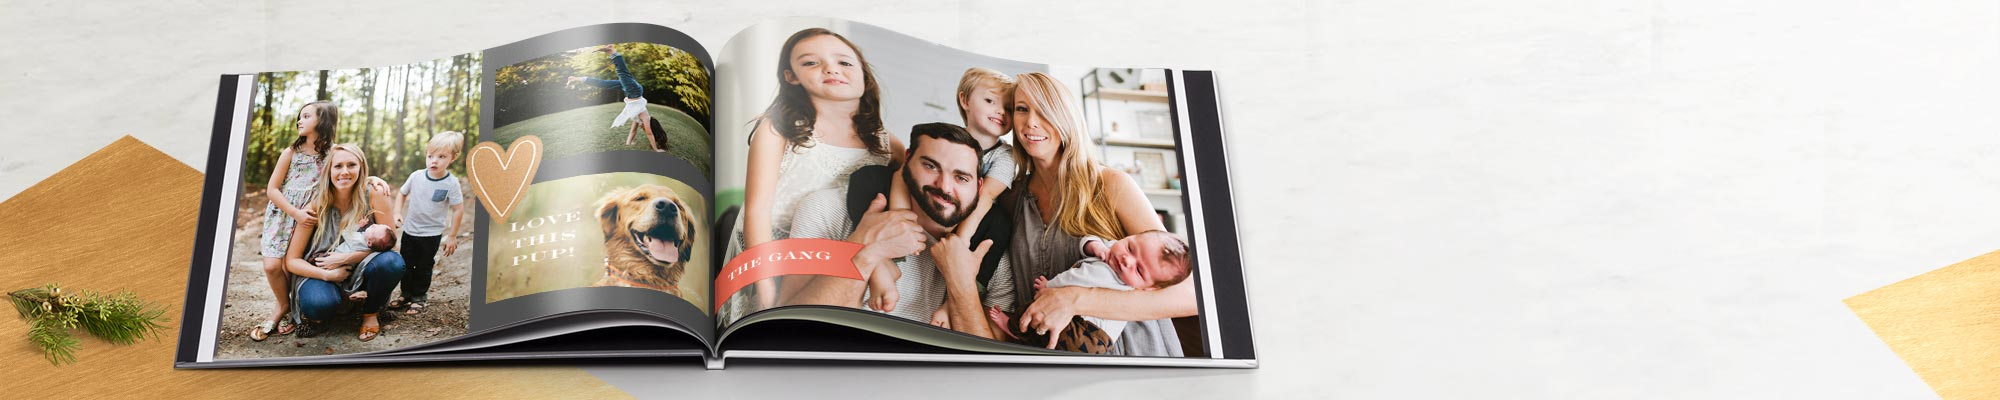 Photo Books Relive all your special moments with a quality photo book - available in a variety of sizes, covers and styles.